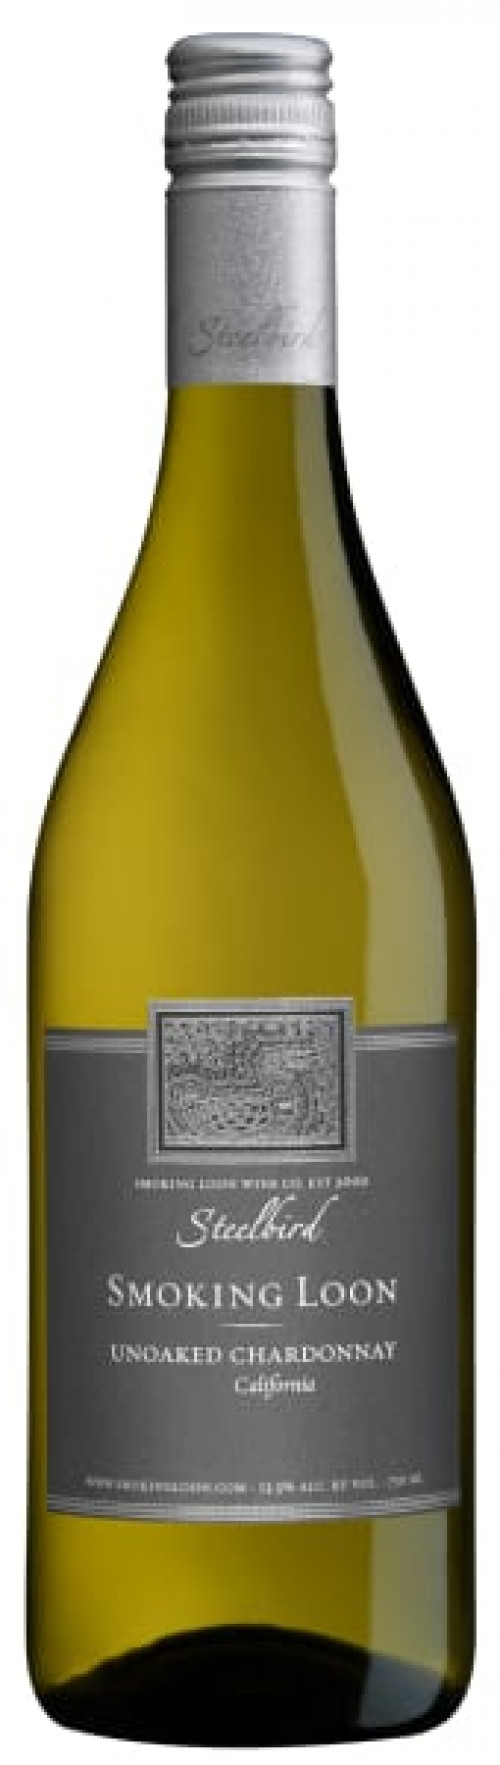 2017 Smoking Loon Steelbird Chardonnay 750Ml